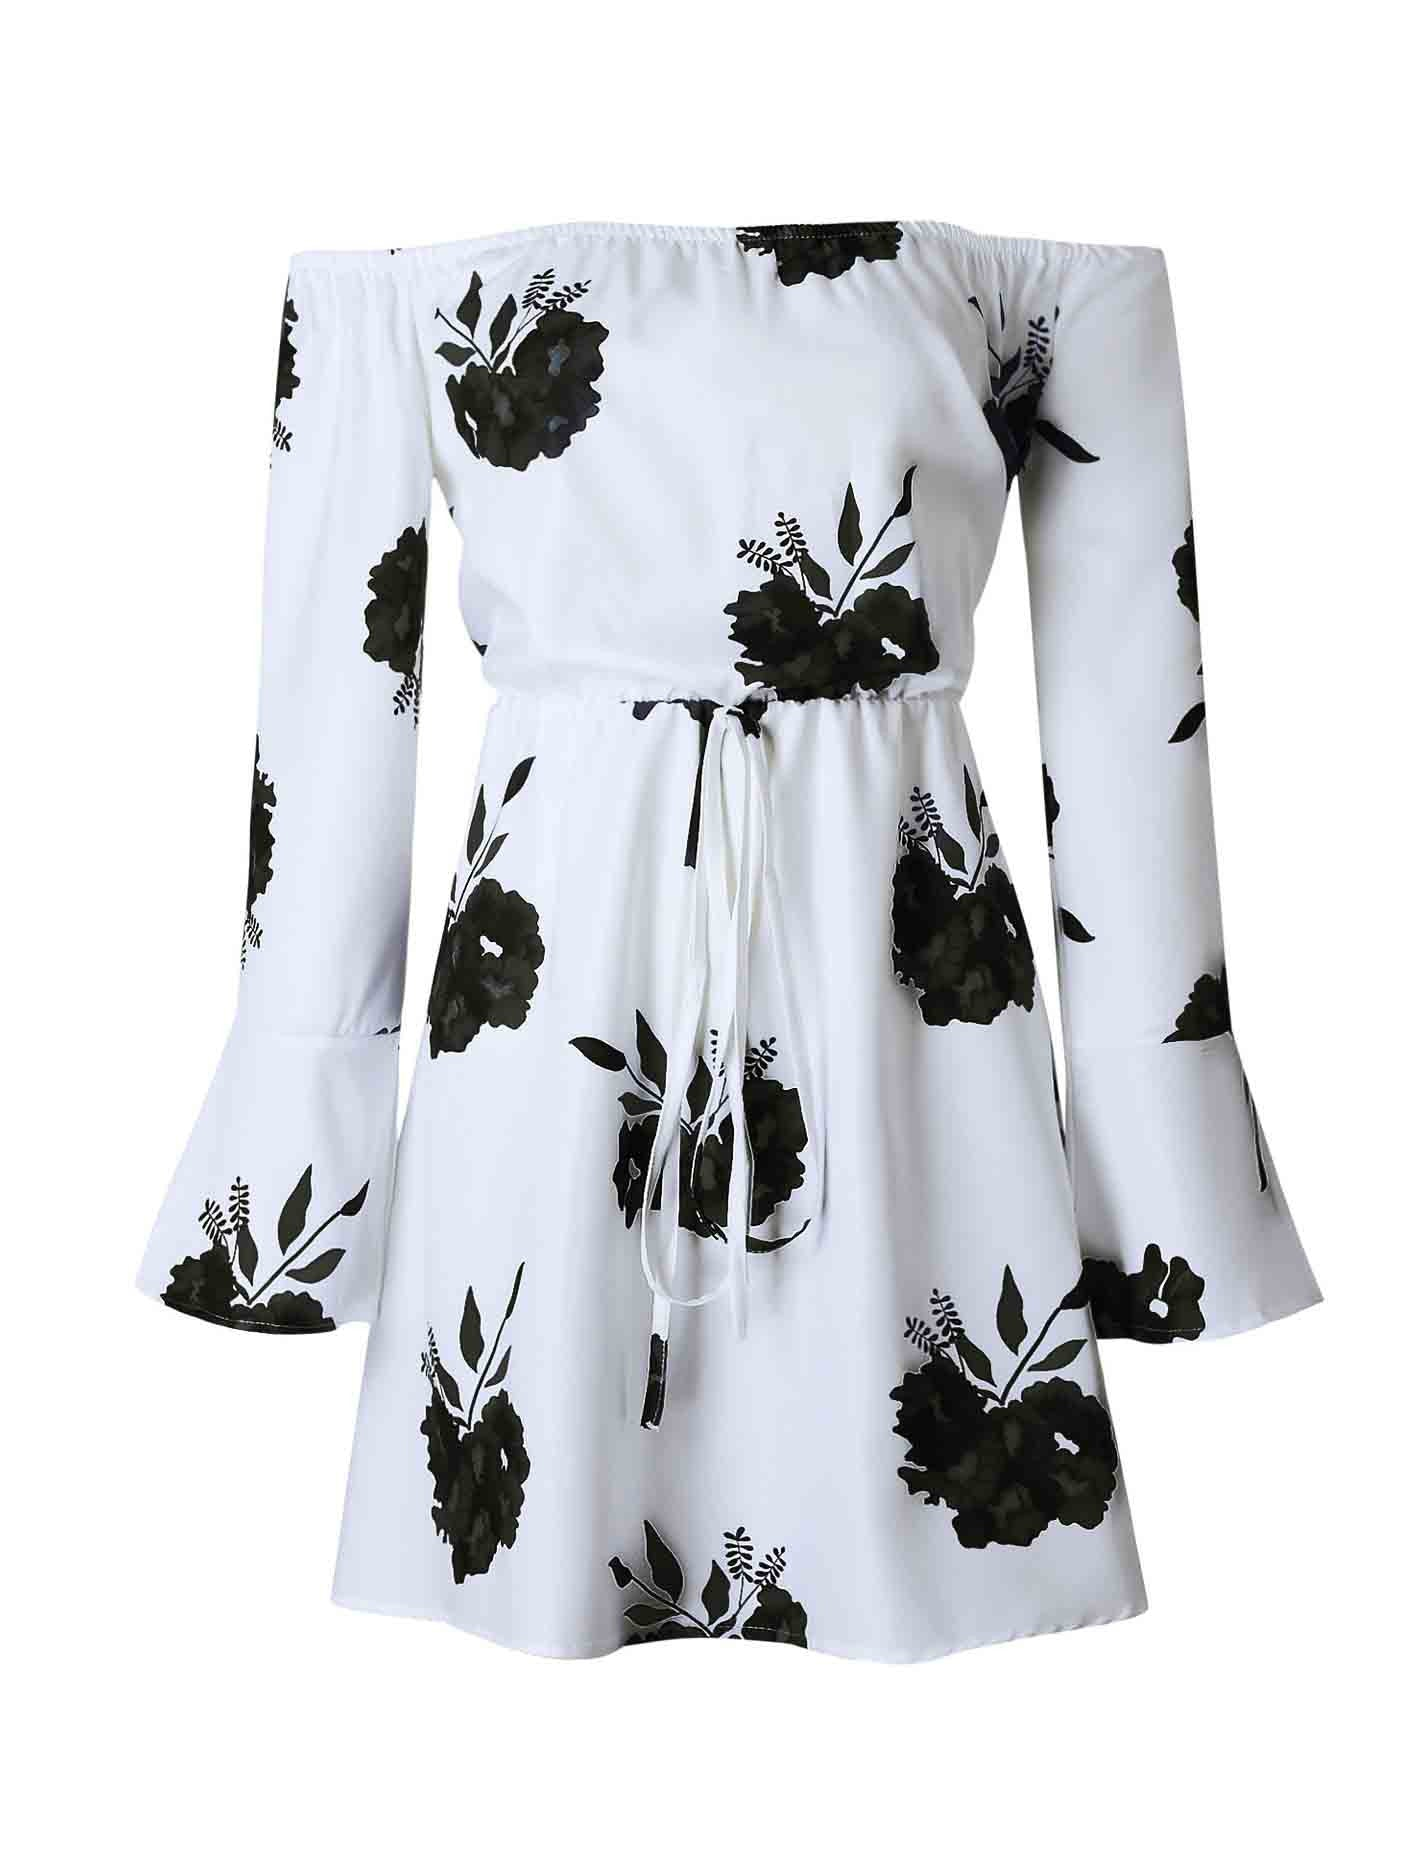 Chicnico Walk My Way Off The Shoulder Floral Print Dress